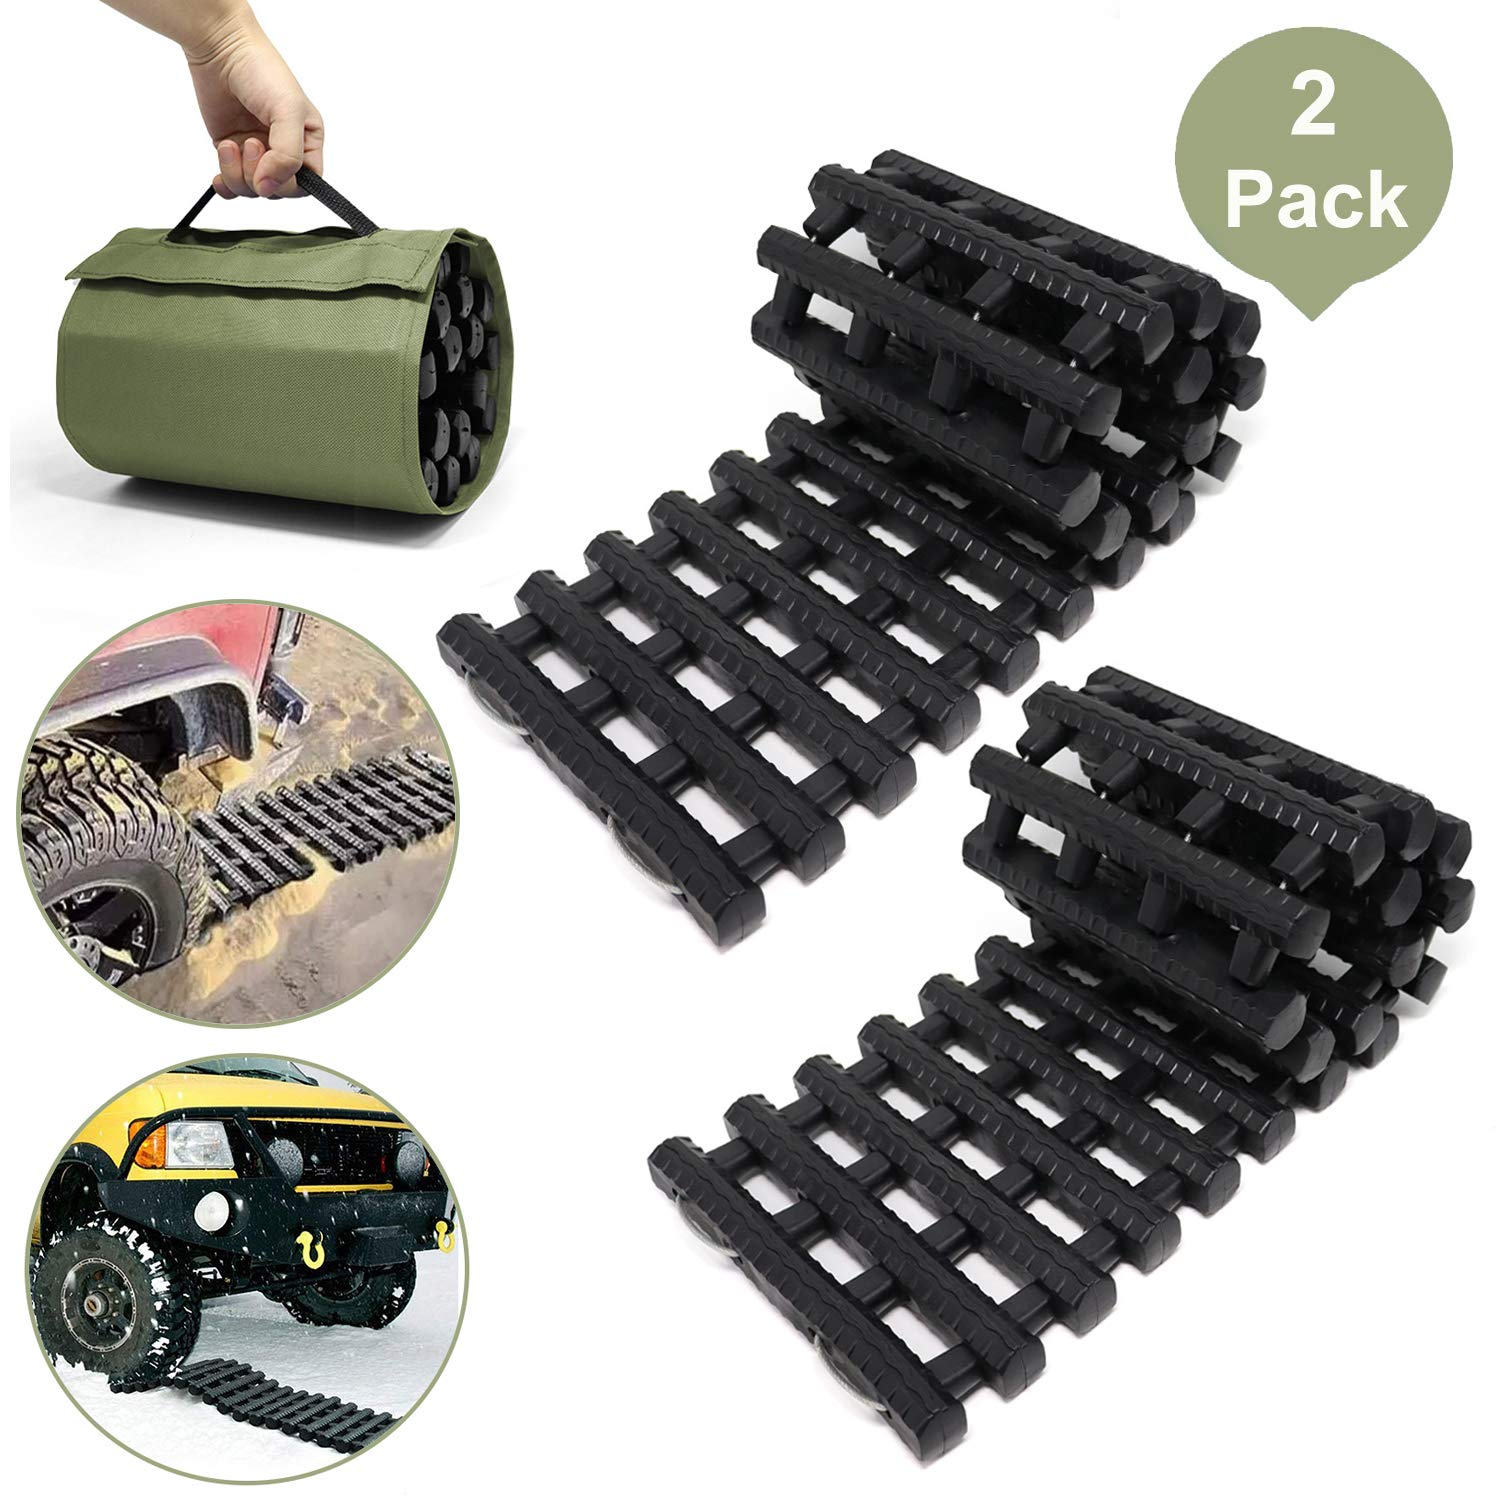 Reliancer 2PC Traction Tracks Mats TPR 31.5'' L Tire Recovery Track Pad Roll Car Vehicle Tyre Traction Boards Tire Ladder Track Grabber Auto Emergency Traction Aid w/Bag for Off-Road Mud Snow Ice Sand by Reliancer-US